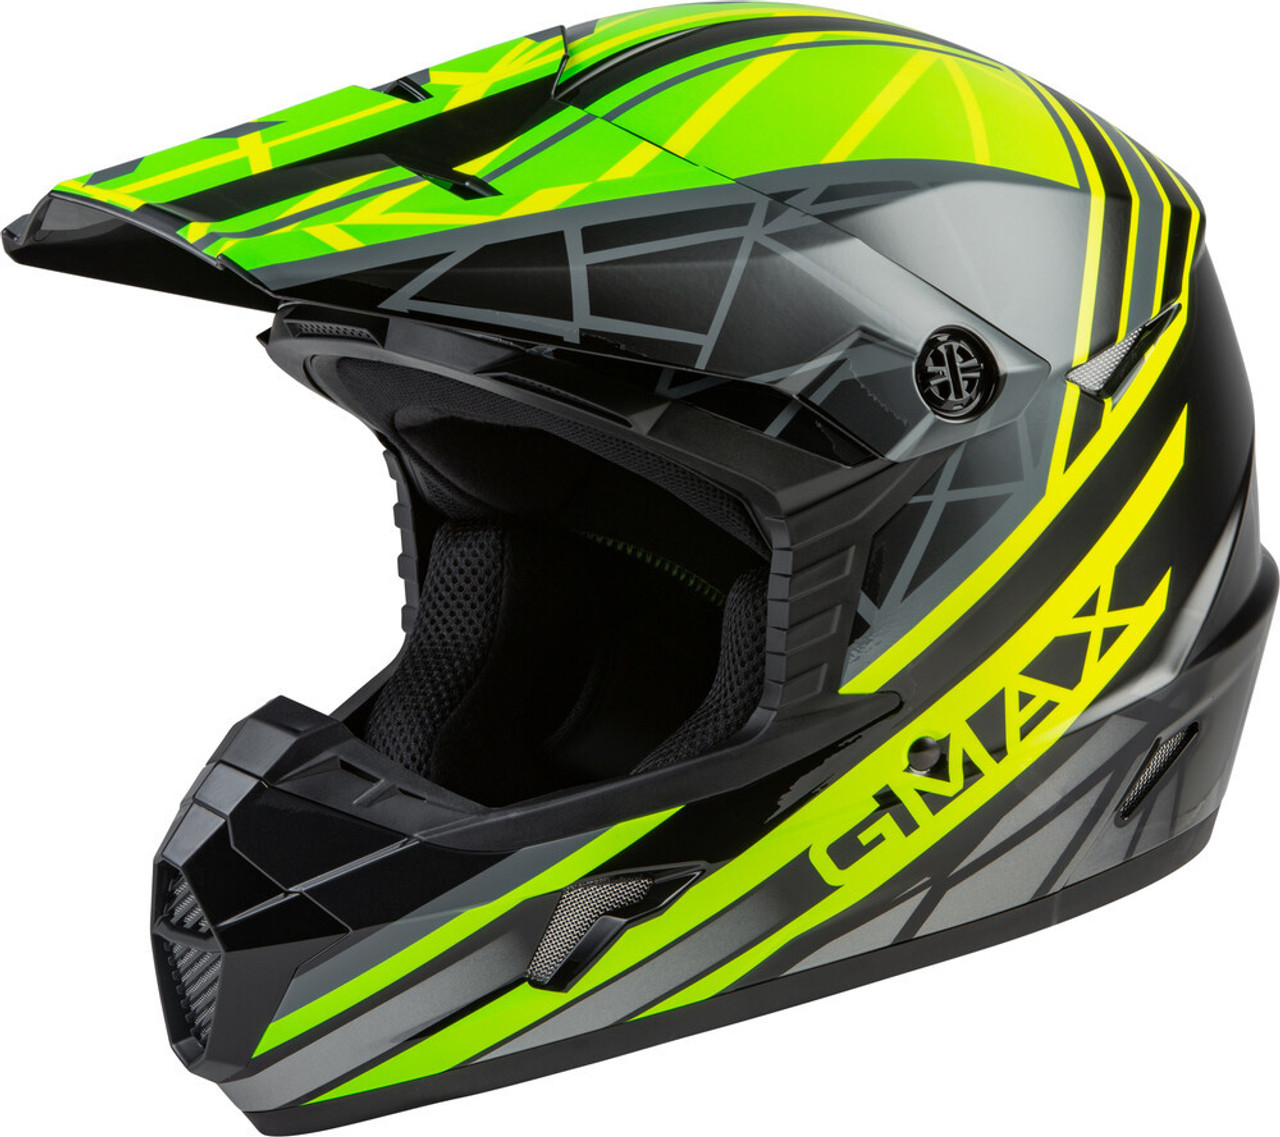 GMAX MX-46Y Mega Off-Road Youth Helmet Black/Hi-Vis/Grey